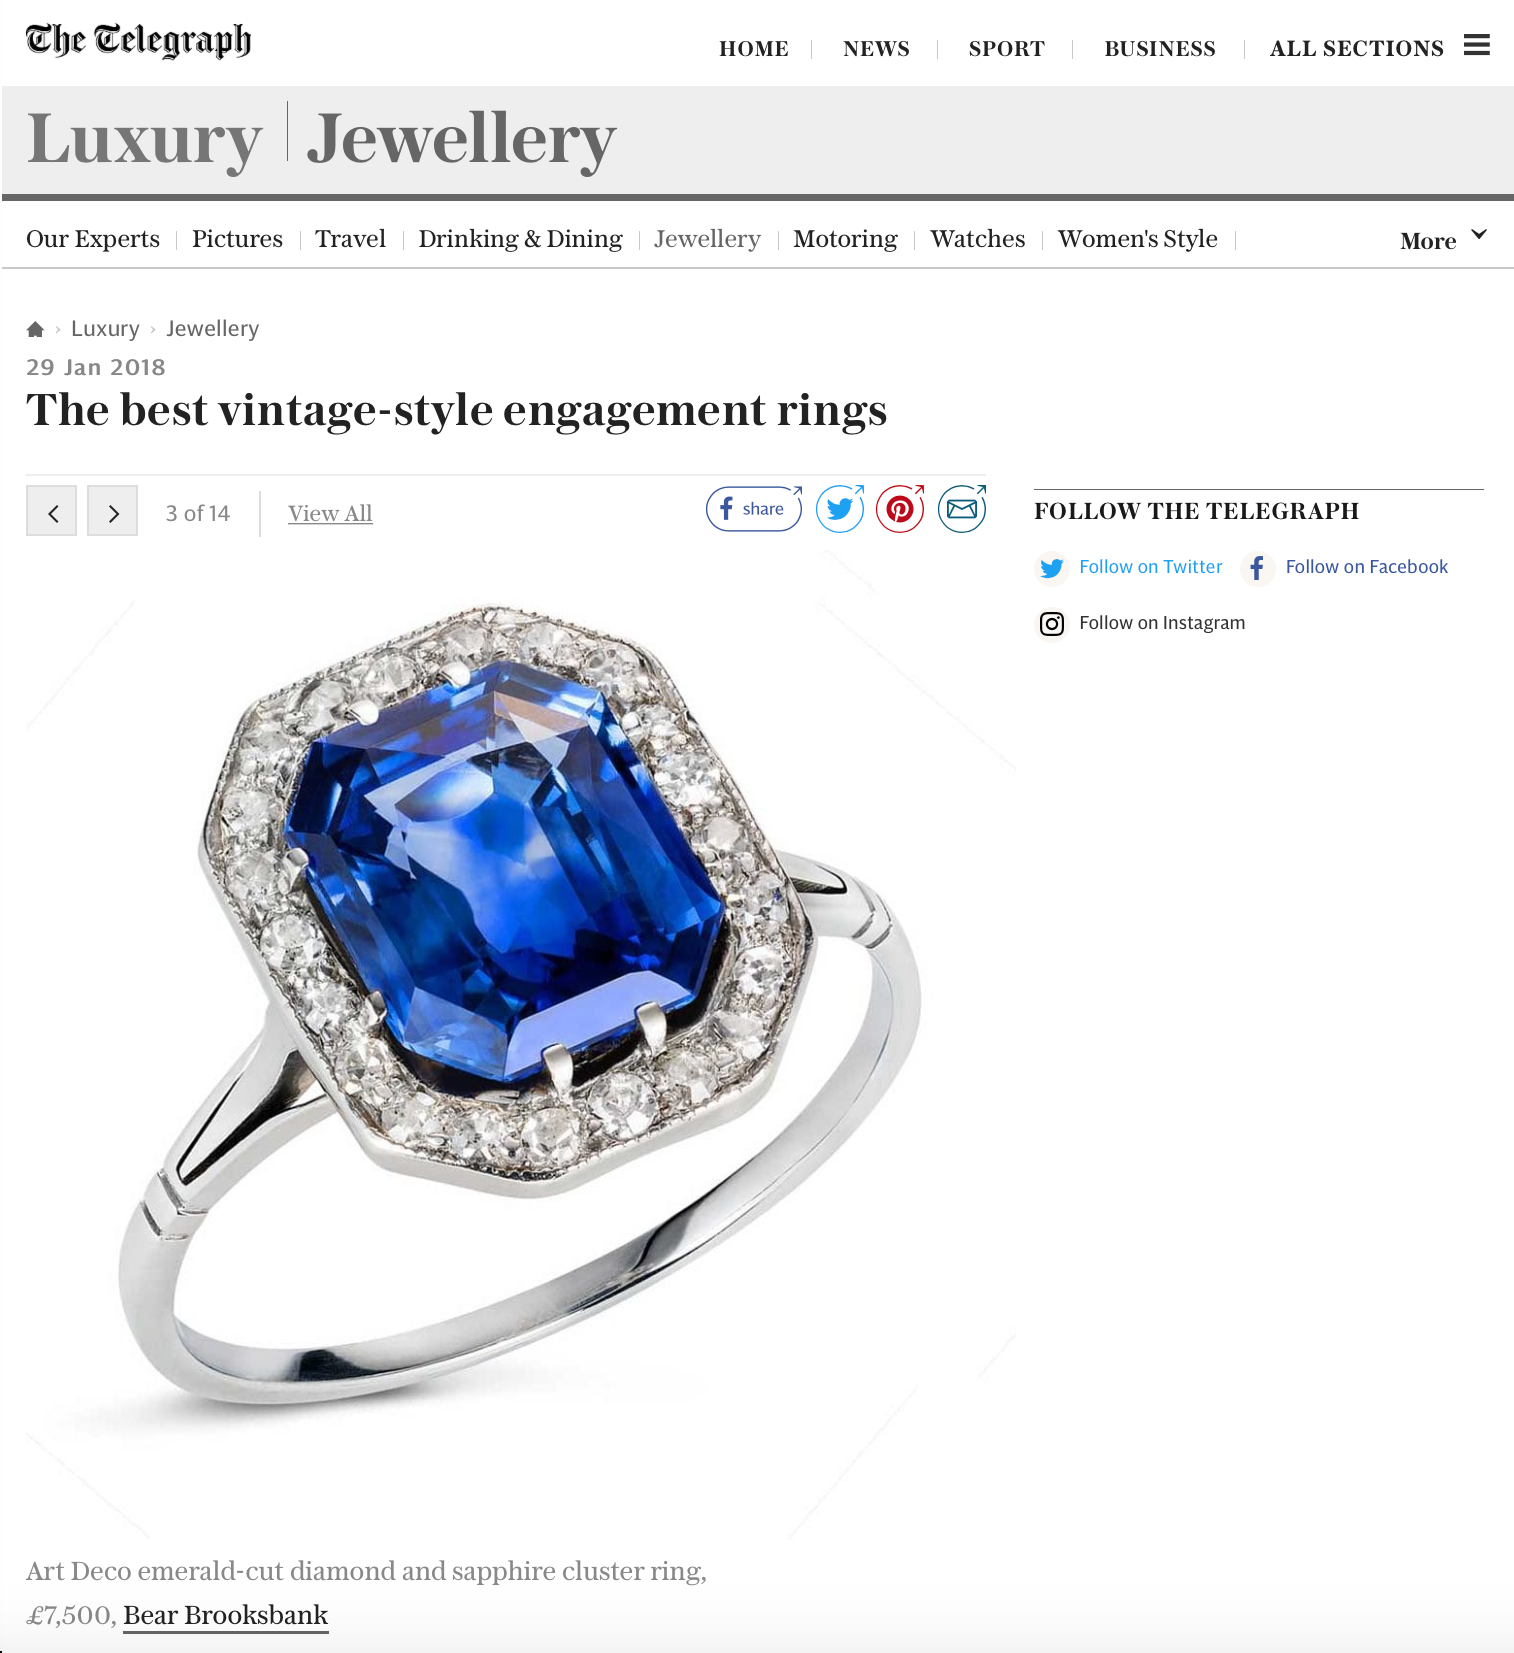 The best vintage-style engagement rings